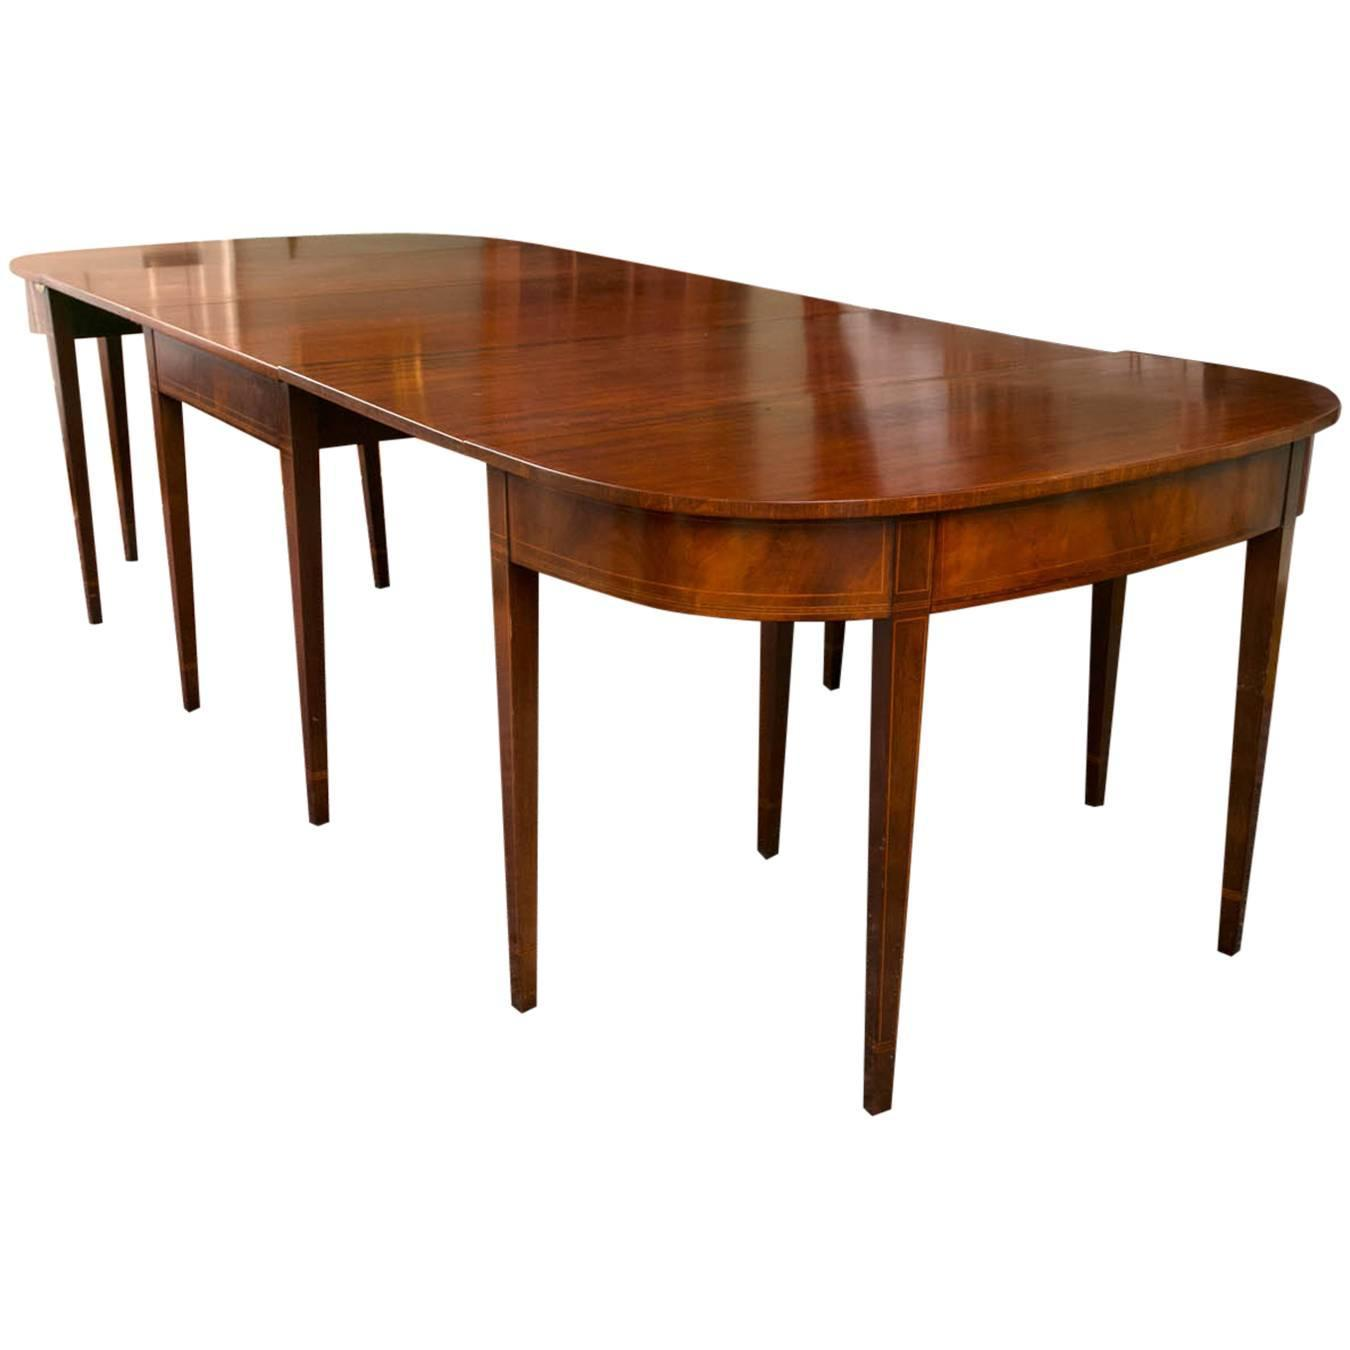 Federal style mahogany three part dining table circa 1920 for Dining room table styles